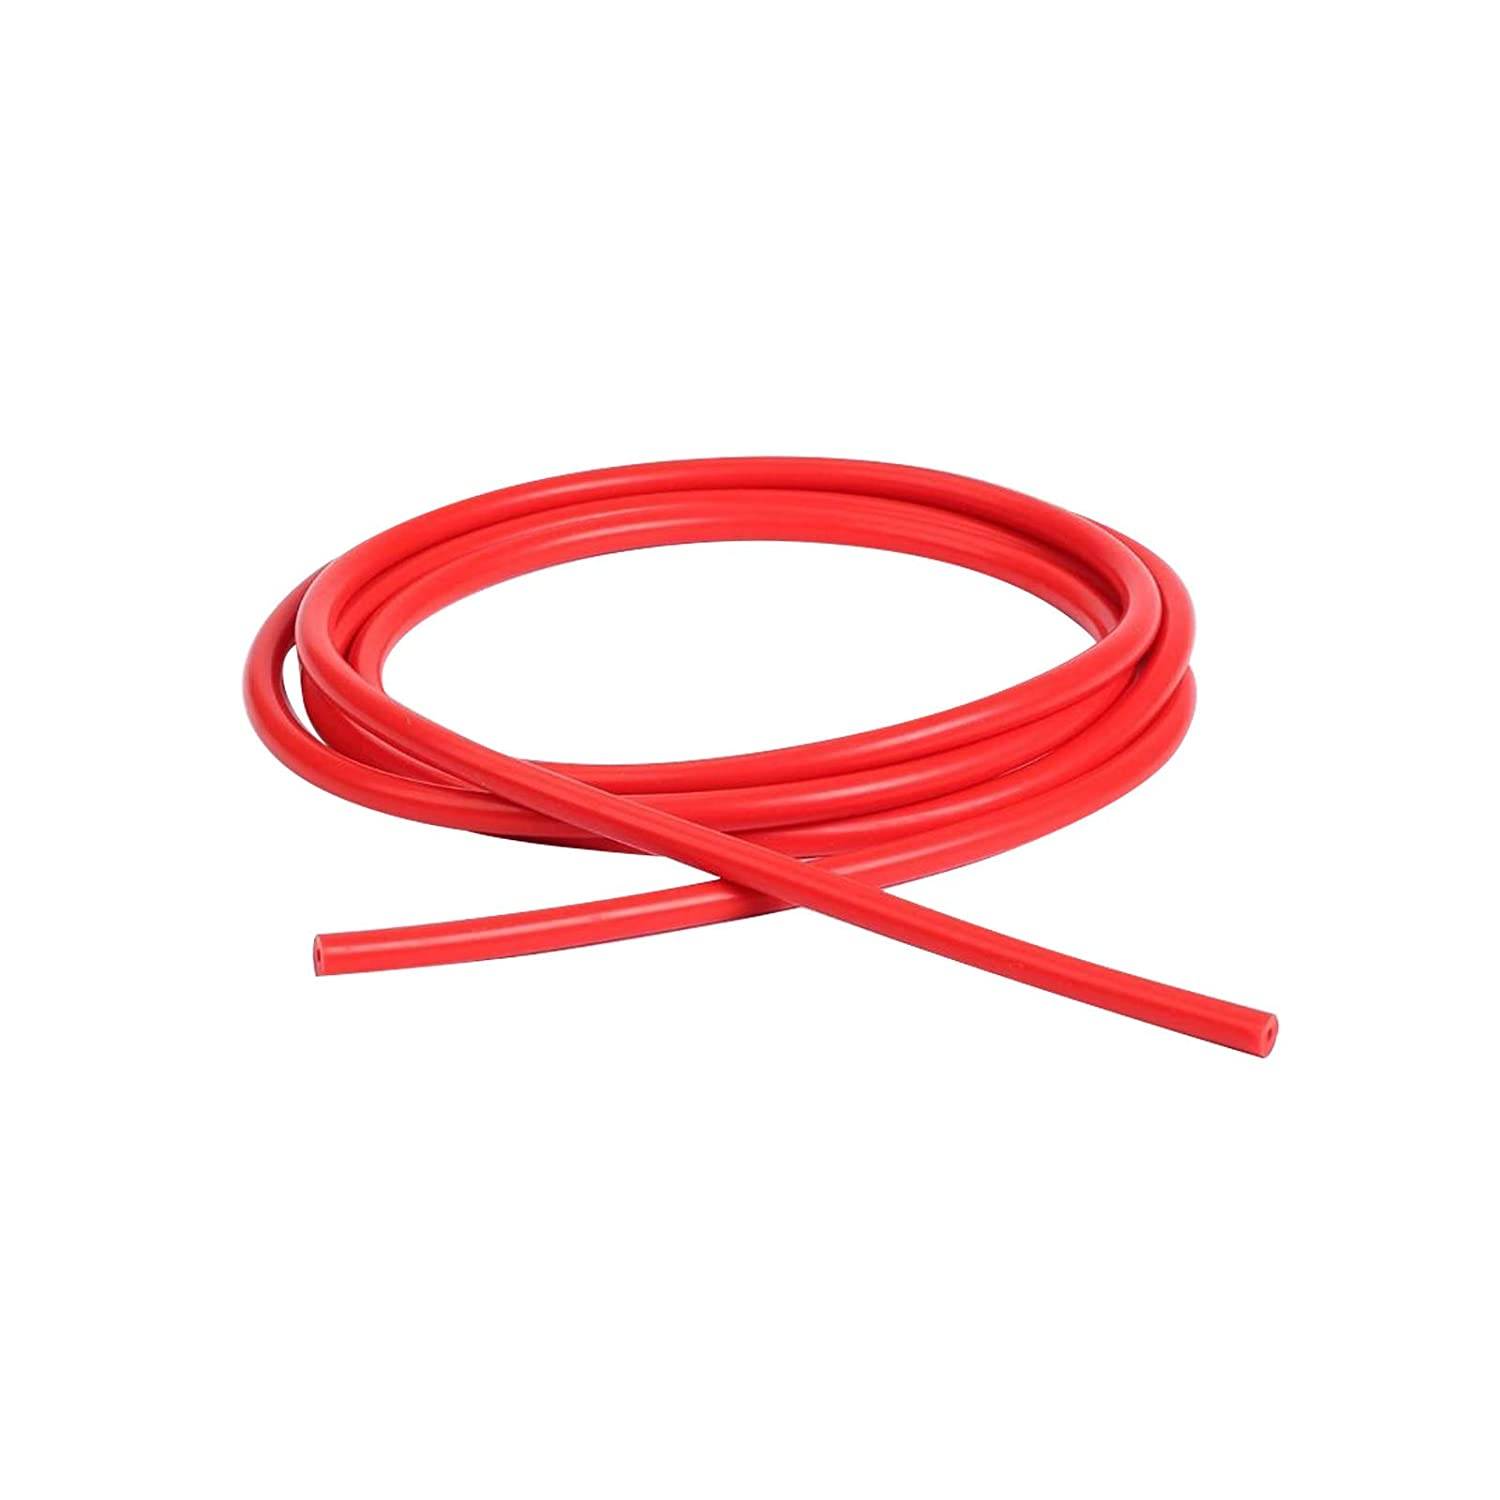 Universal 12mm Inner Diameter High Performance Silicone Vacuum Hose 5FT Red